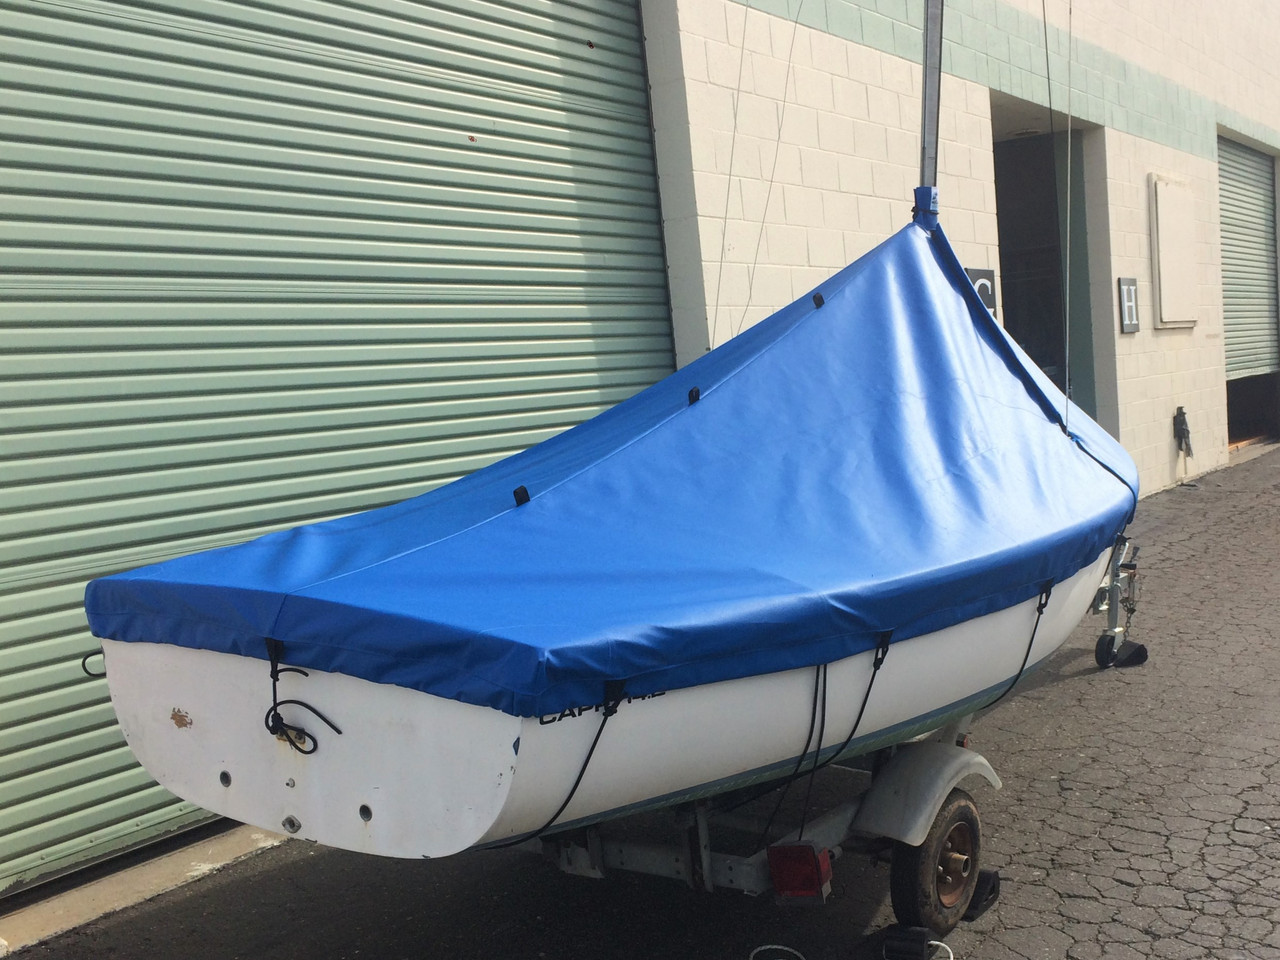 A Mast Up Peaked Cover from SLO Sail and Canvas will shed water and debris - keeping your Capri 14.2 by Catalina clean and ready to sail in minutes.